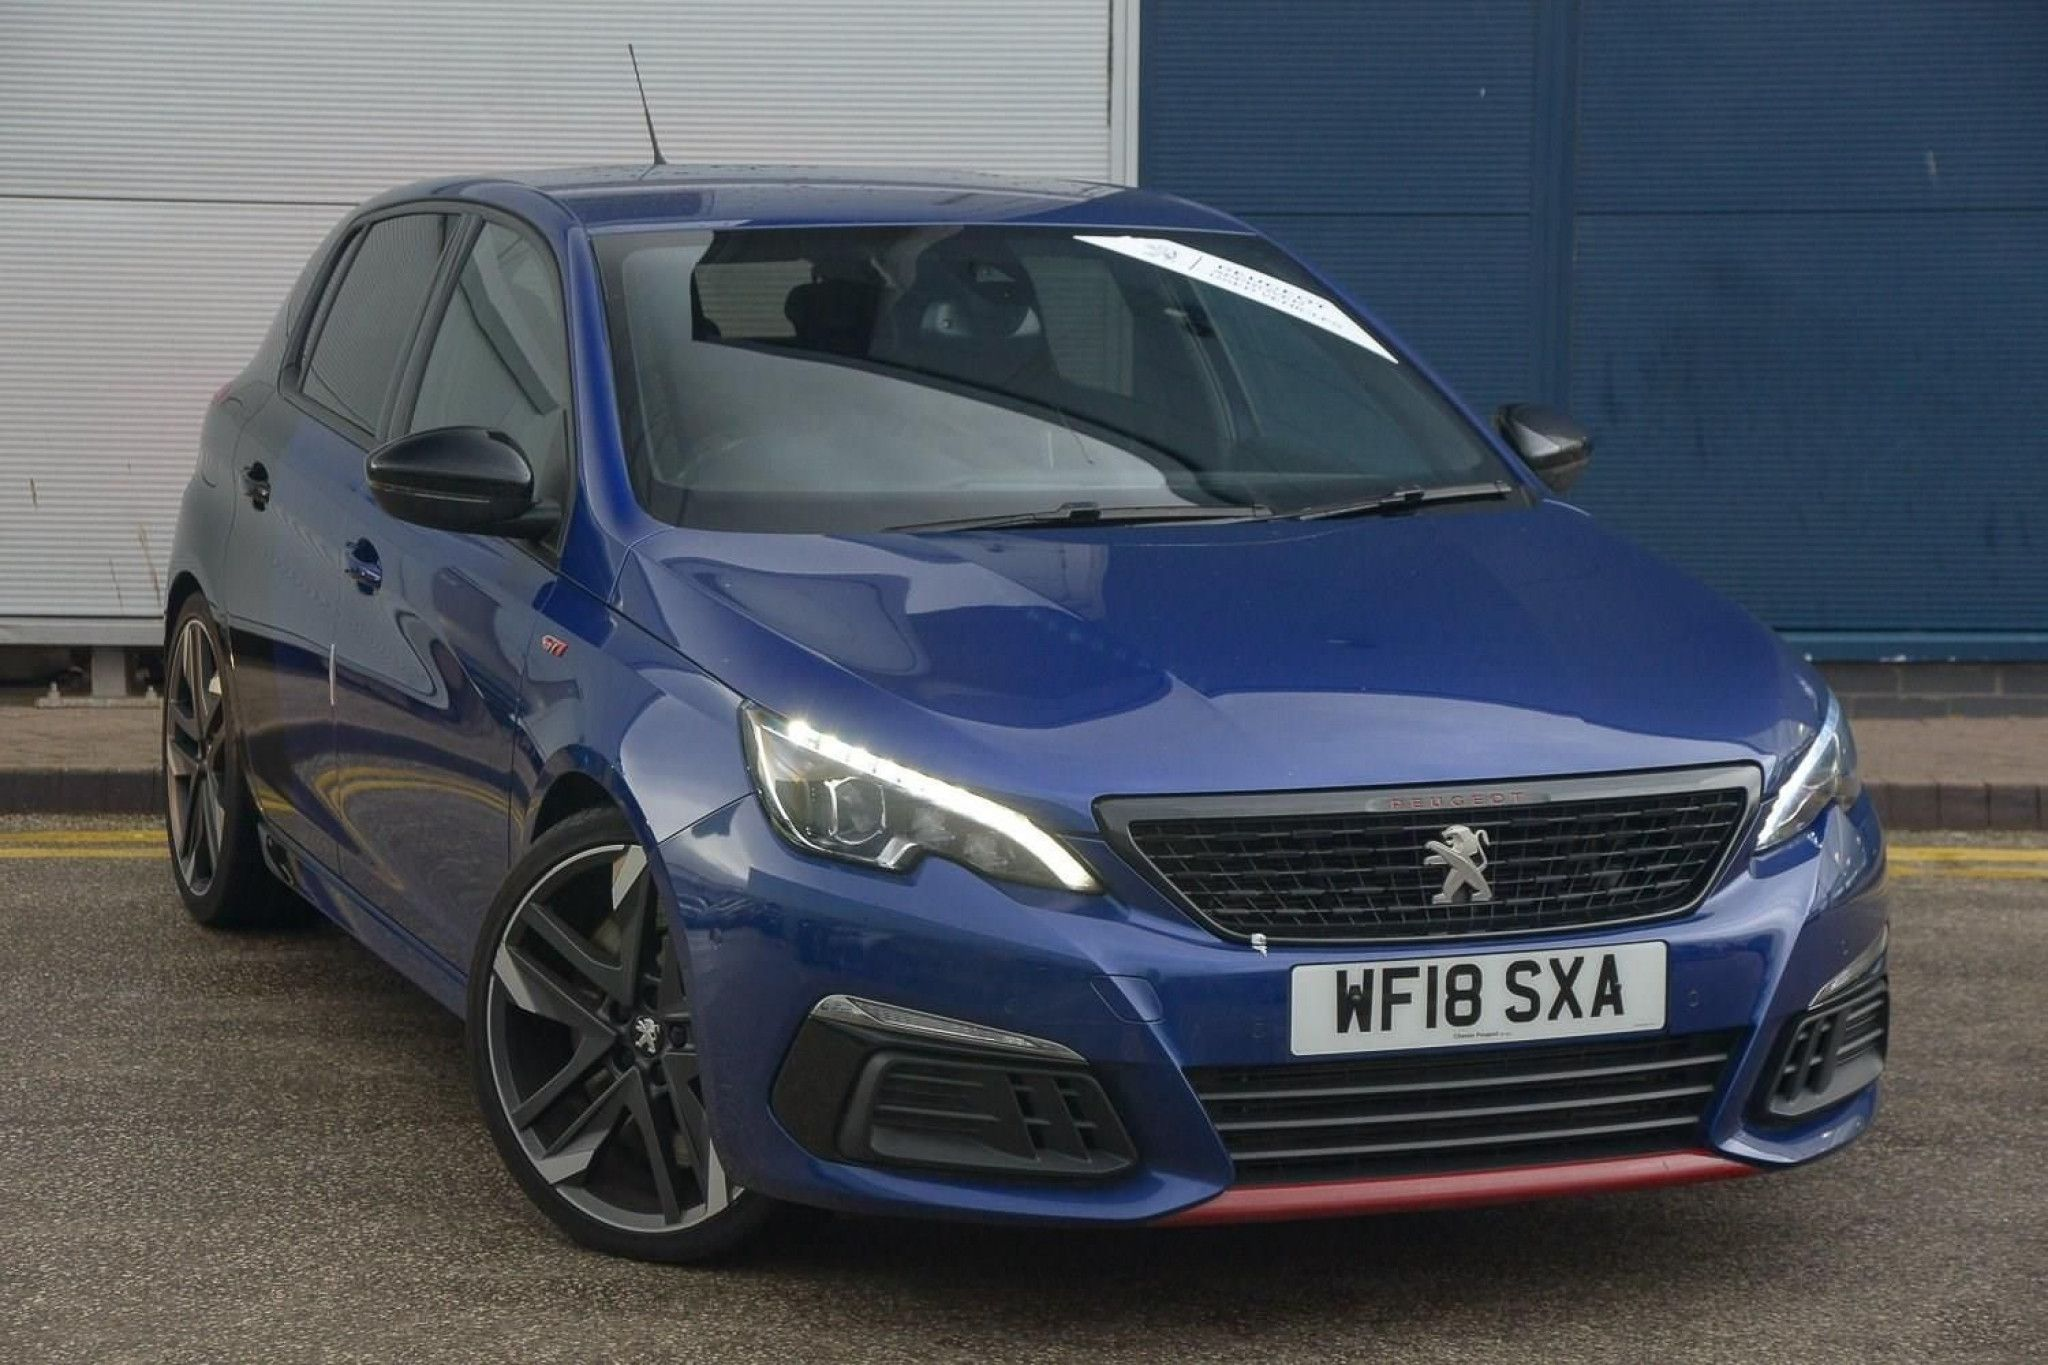 Peugeot 308 1 6 Thp 270 Gti 5dr Peugeot Car Vehicles